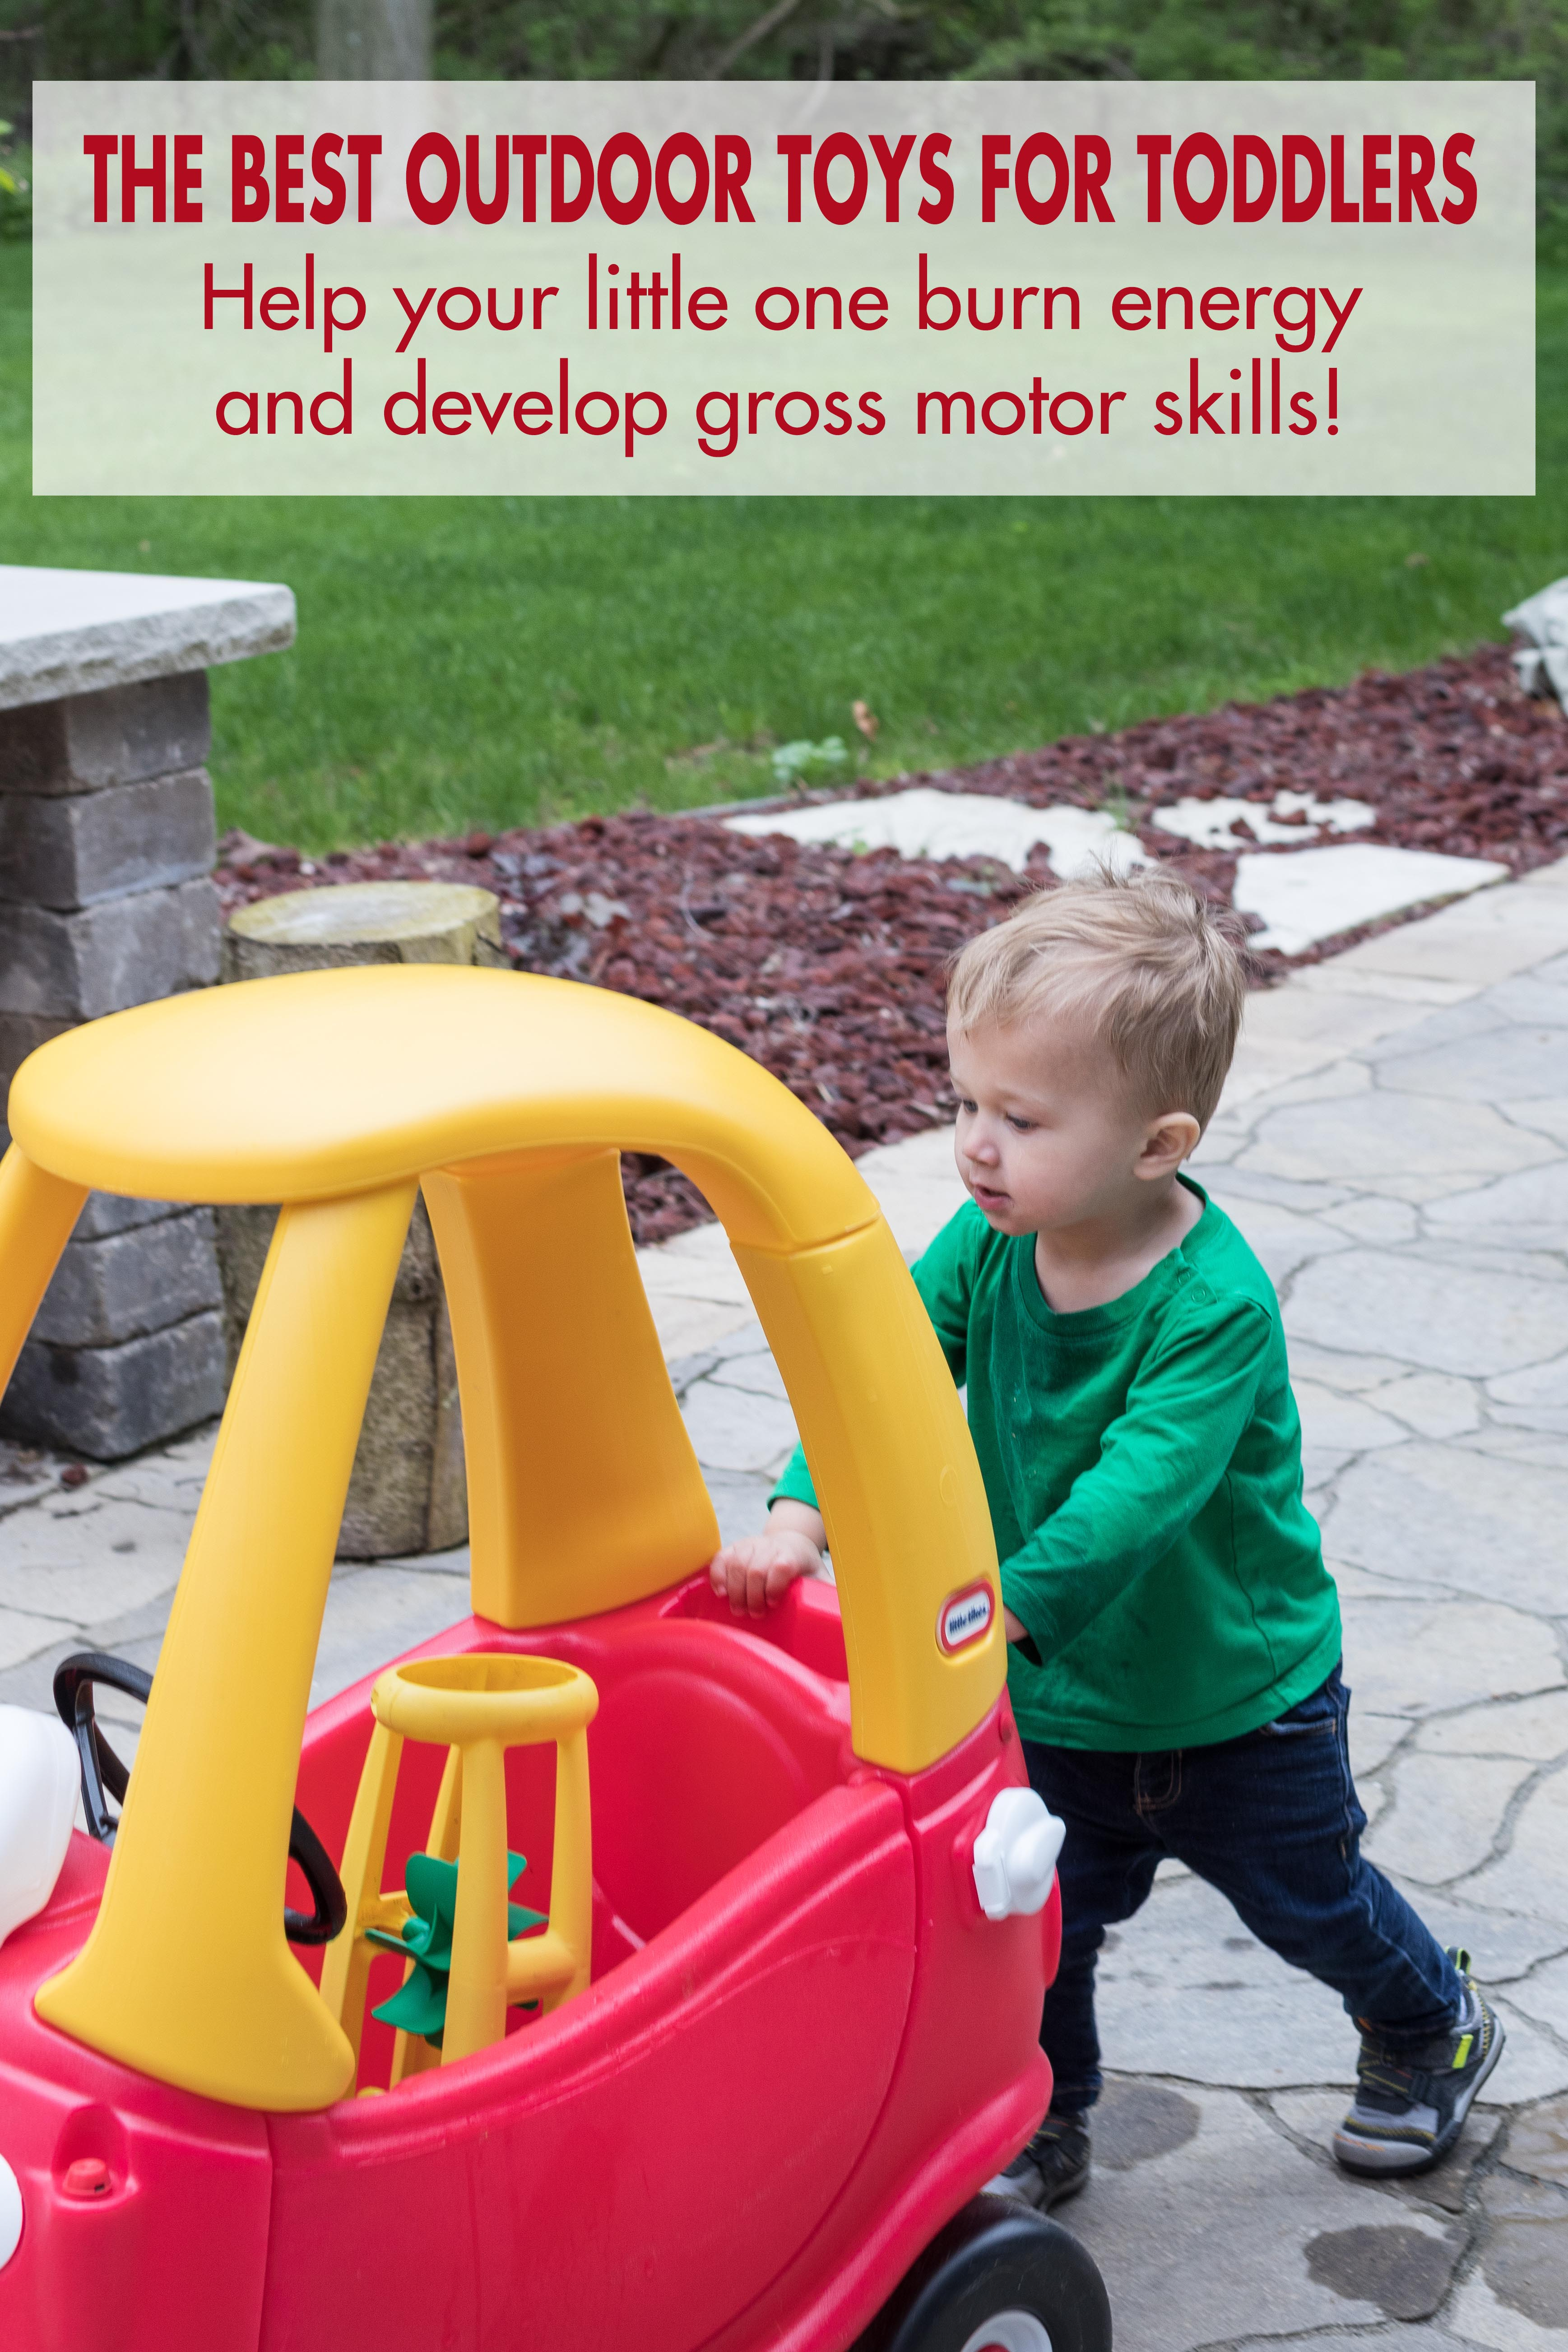 The best outdoor toys for toddlers. Active toys help high energy two- and three-year-olds burn energy and develop gross motor skills! #besttoddlertoys #bestoutdoortoys #toysfortoddlers #activetoddlers | https://www.roseclearfield.com